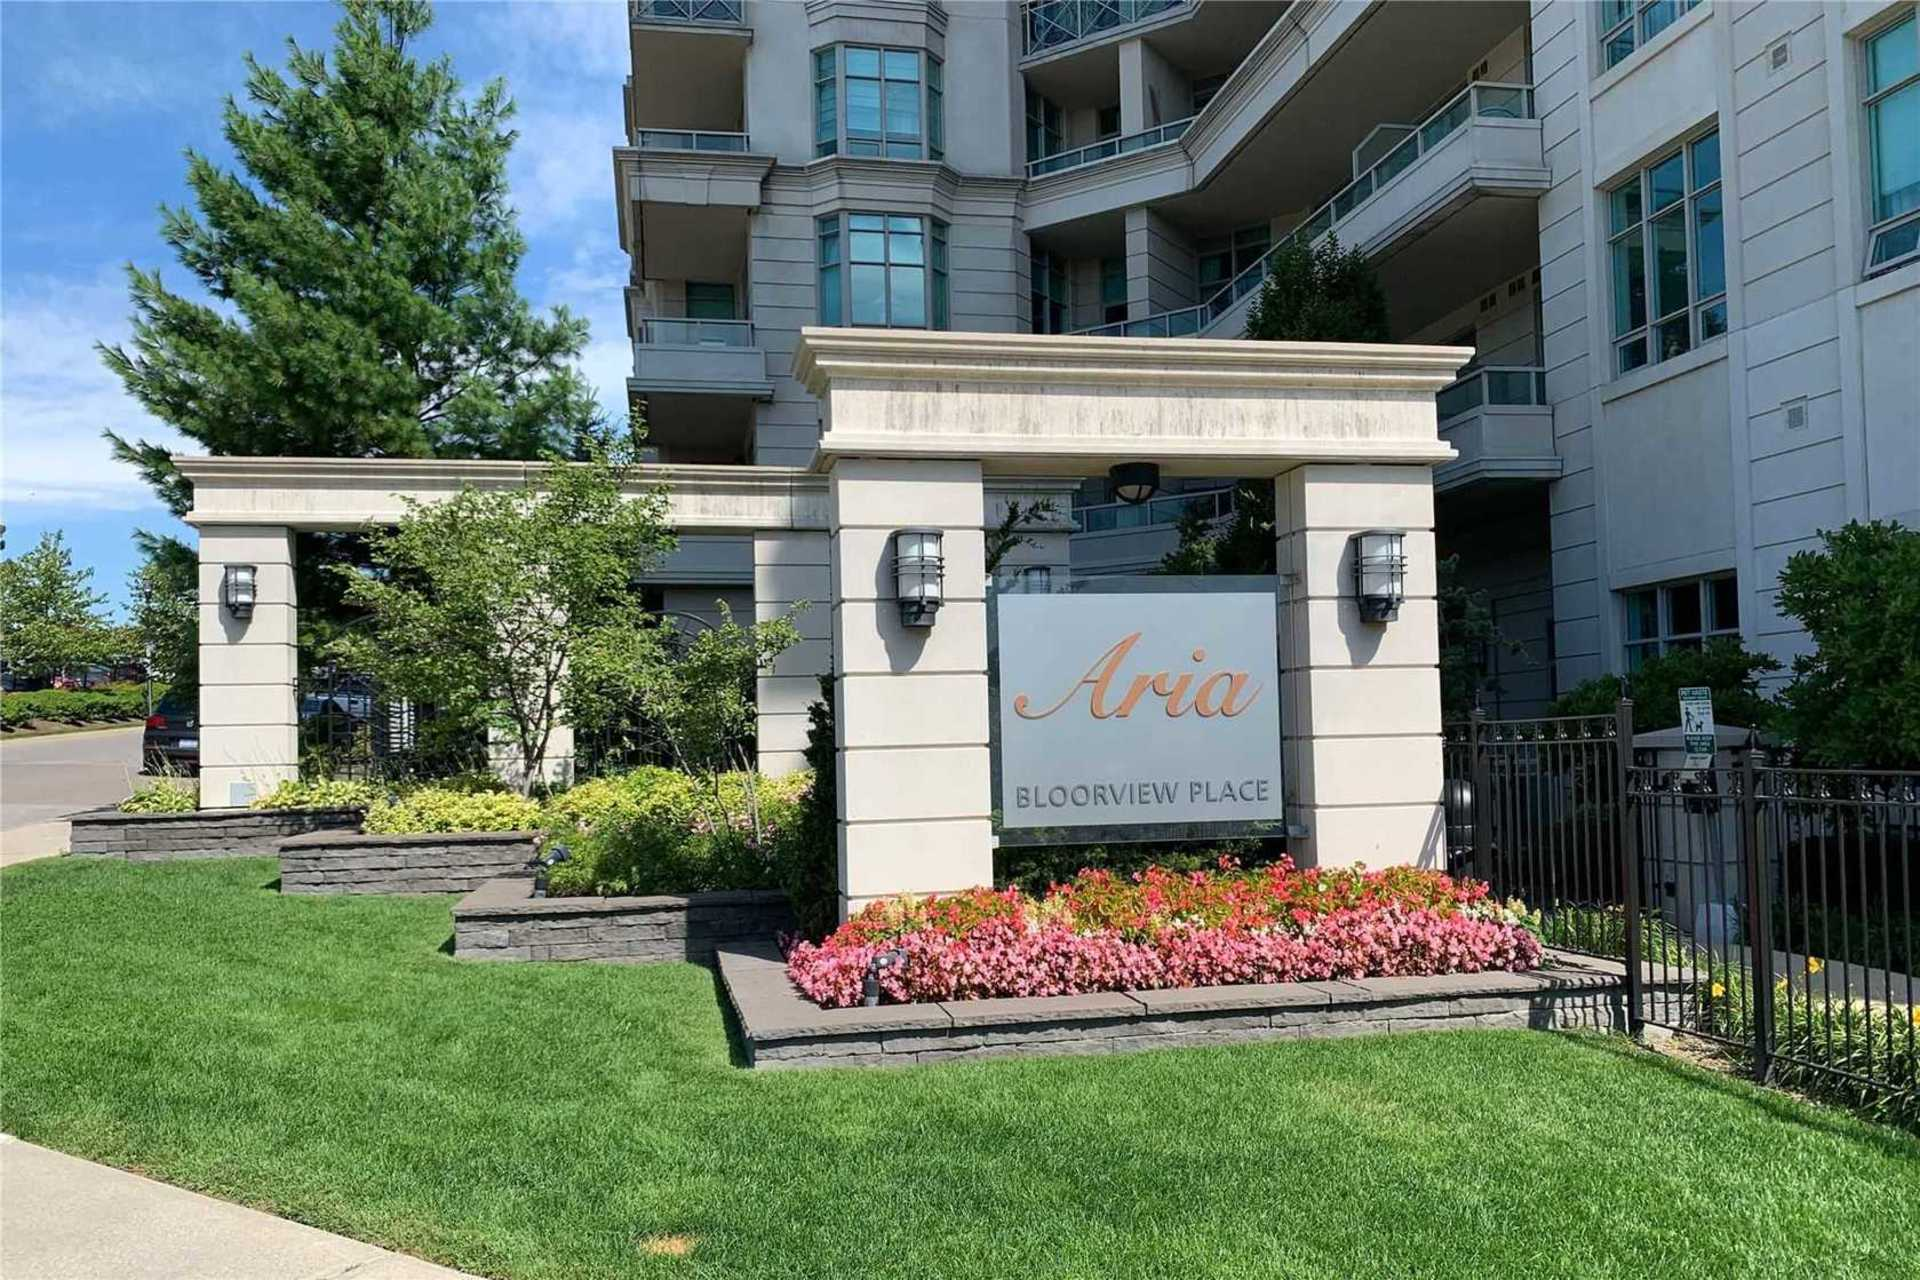 Front at 1209 - 10 Bloorview Place, Don Valley Village, Toronto